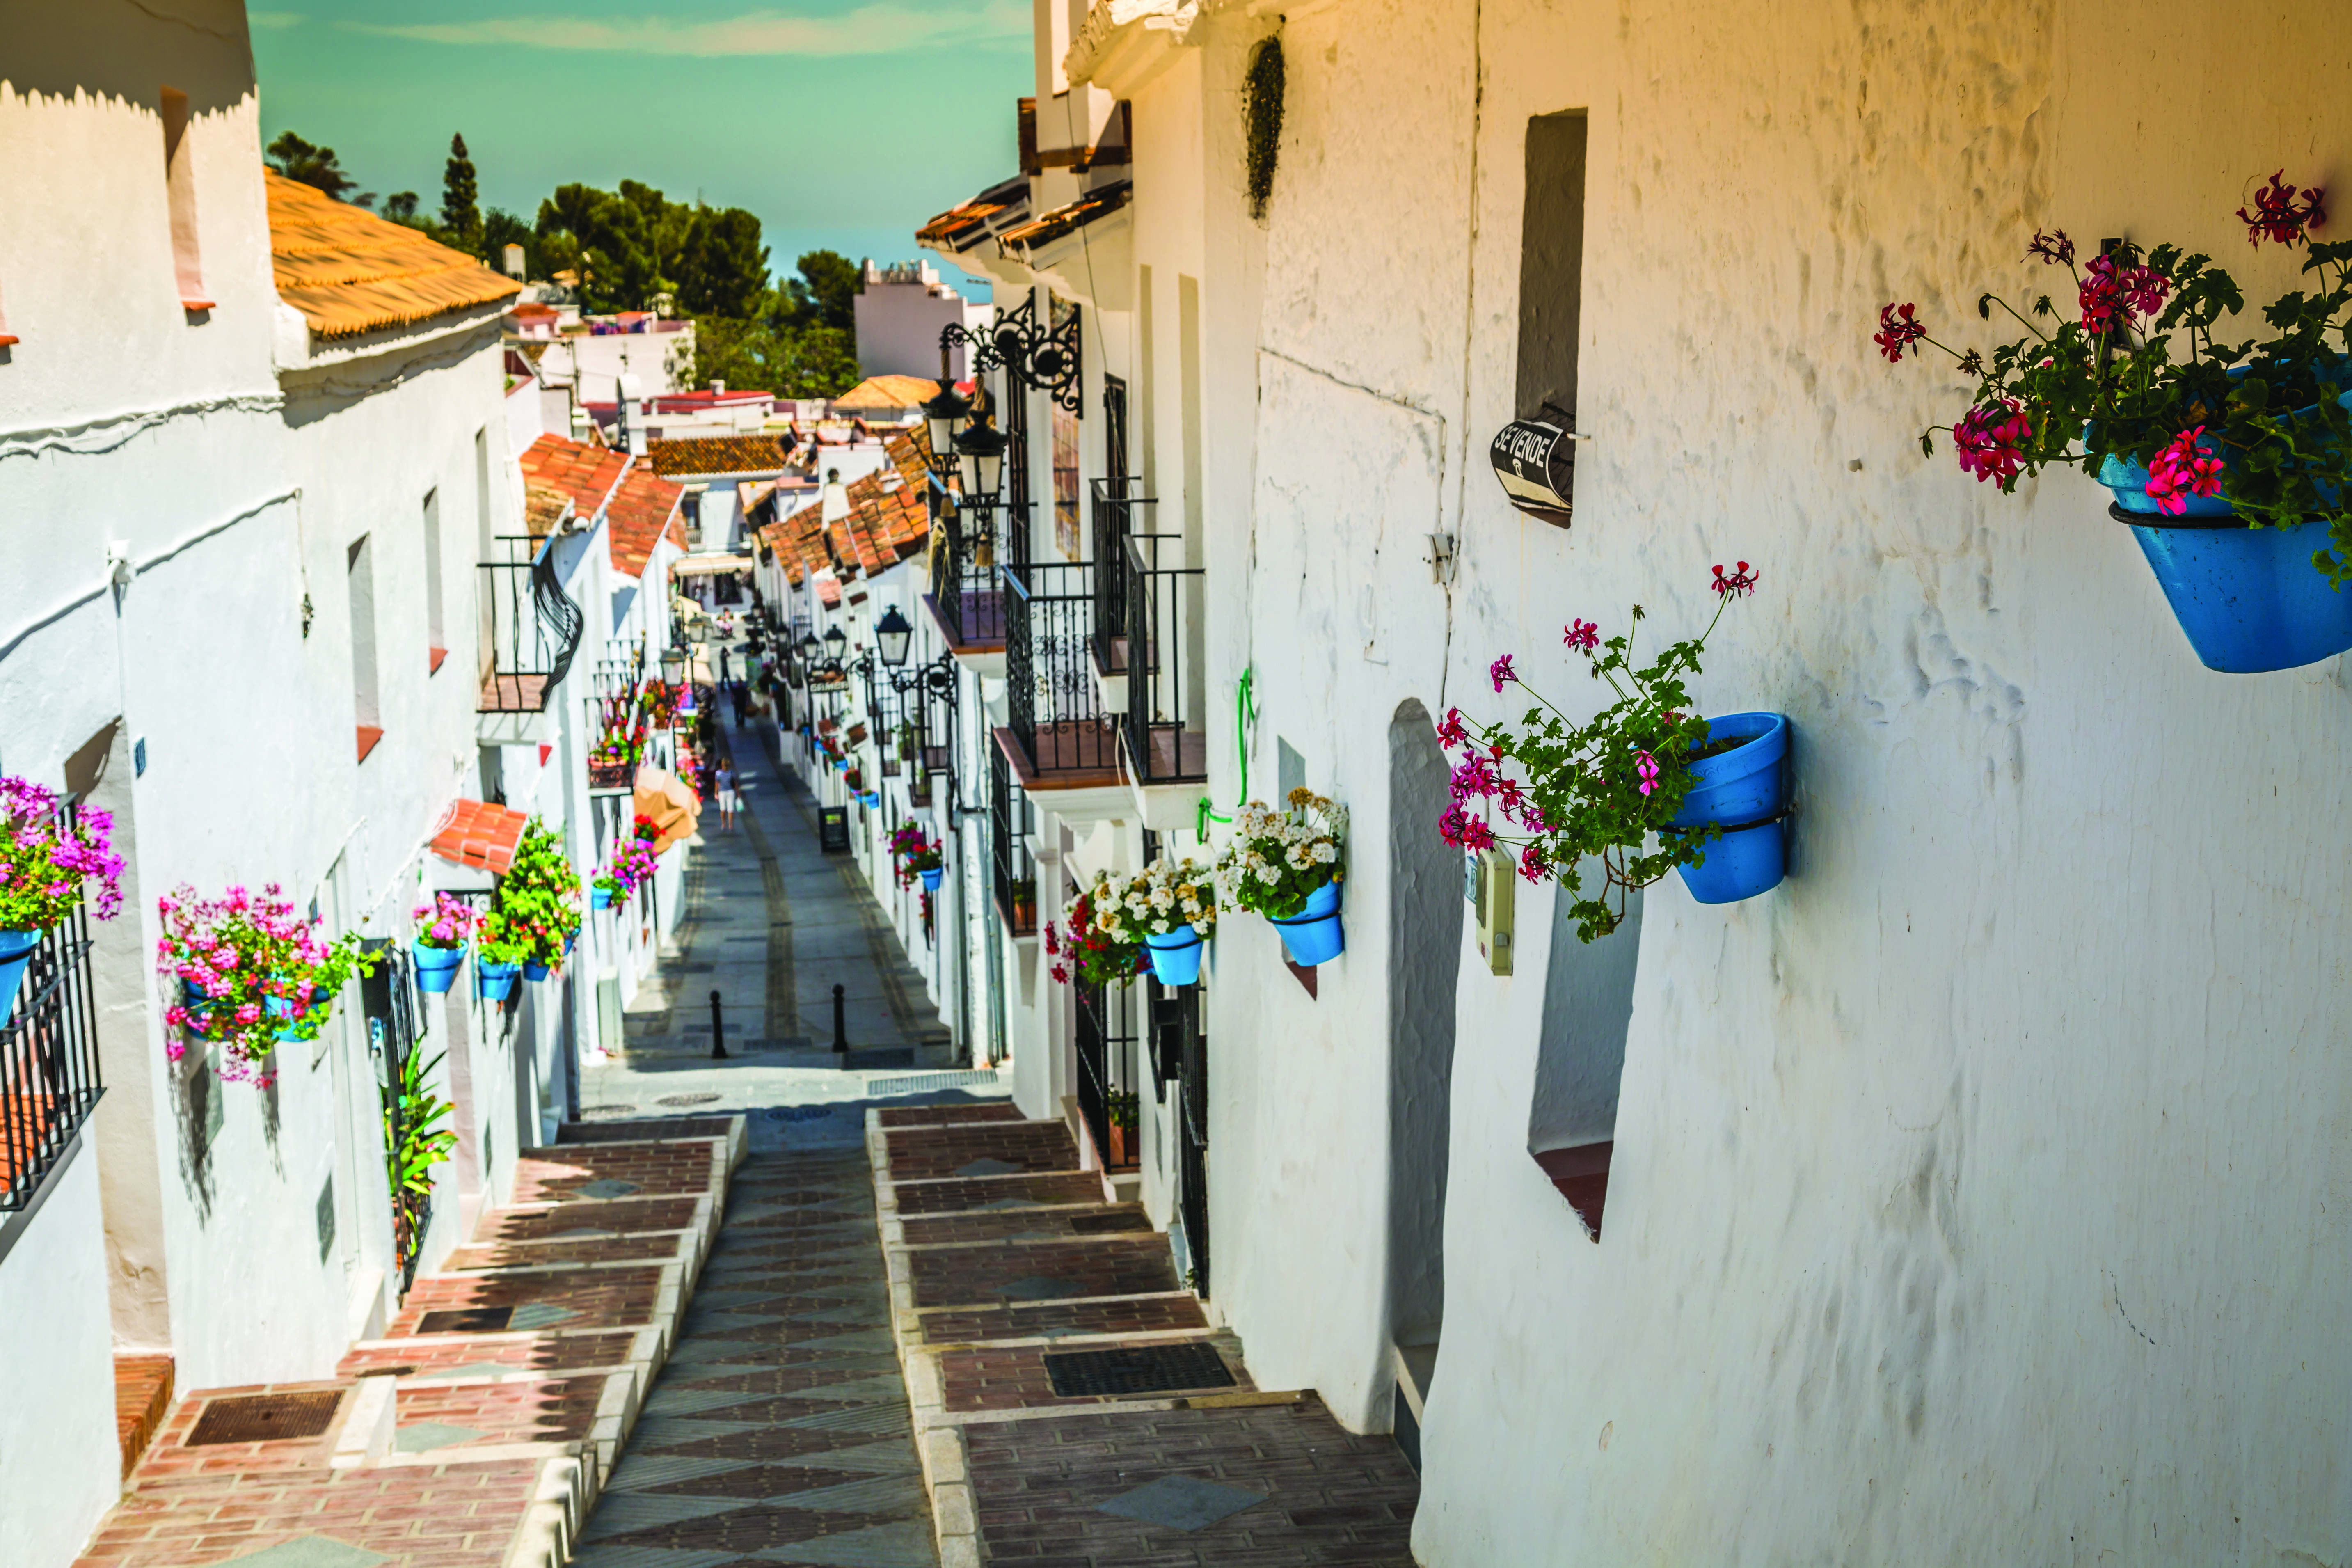 While Andalucia in southern Spain is famous for its built-up resort areas, the region has charm in abundance in picturesque villages such as Mijas